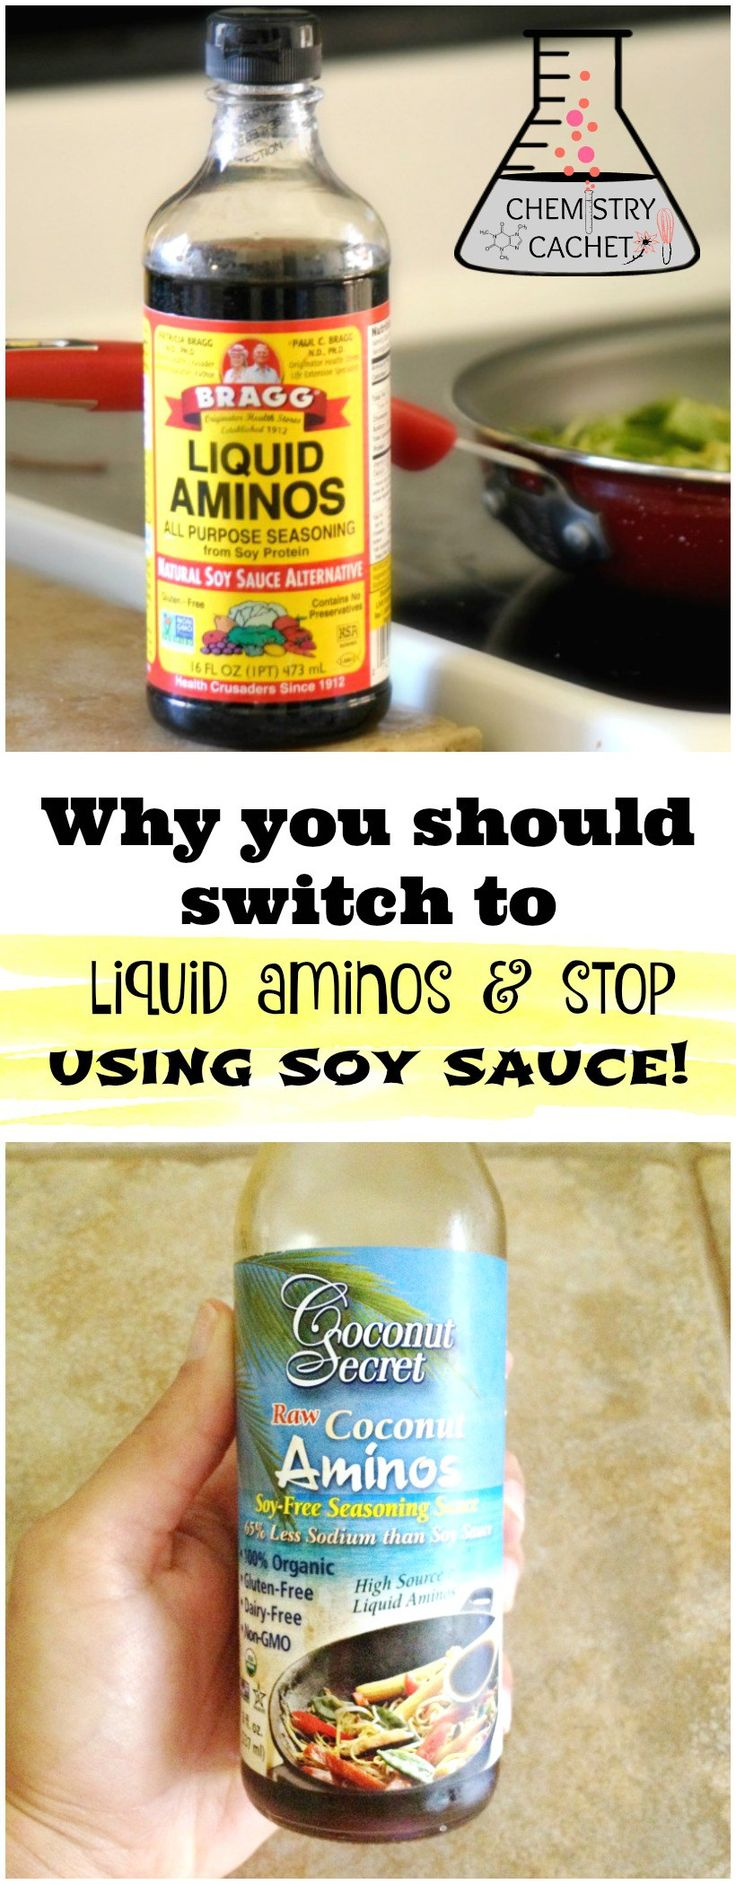 What Exactly Are Liquid Aminos Plus Why It's Better Than Soy Sauce...and why should you stop using soy sauce Important chemist tips on chemistrycachet.com